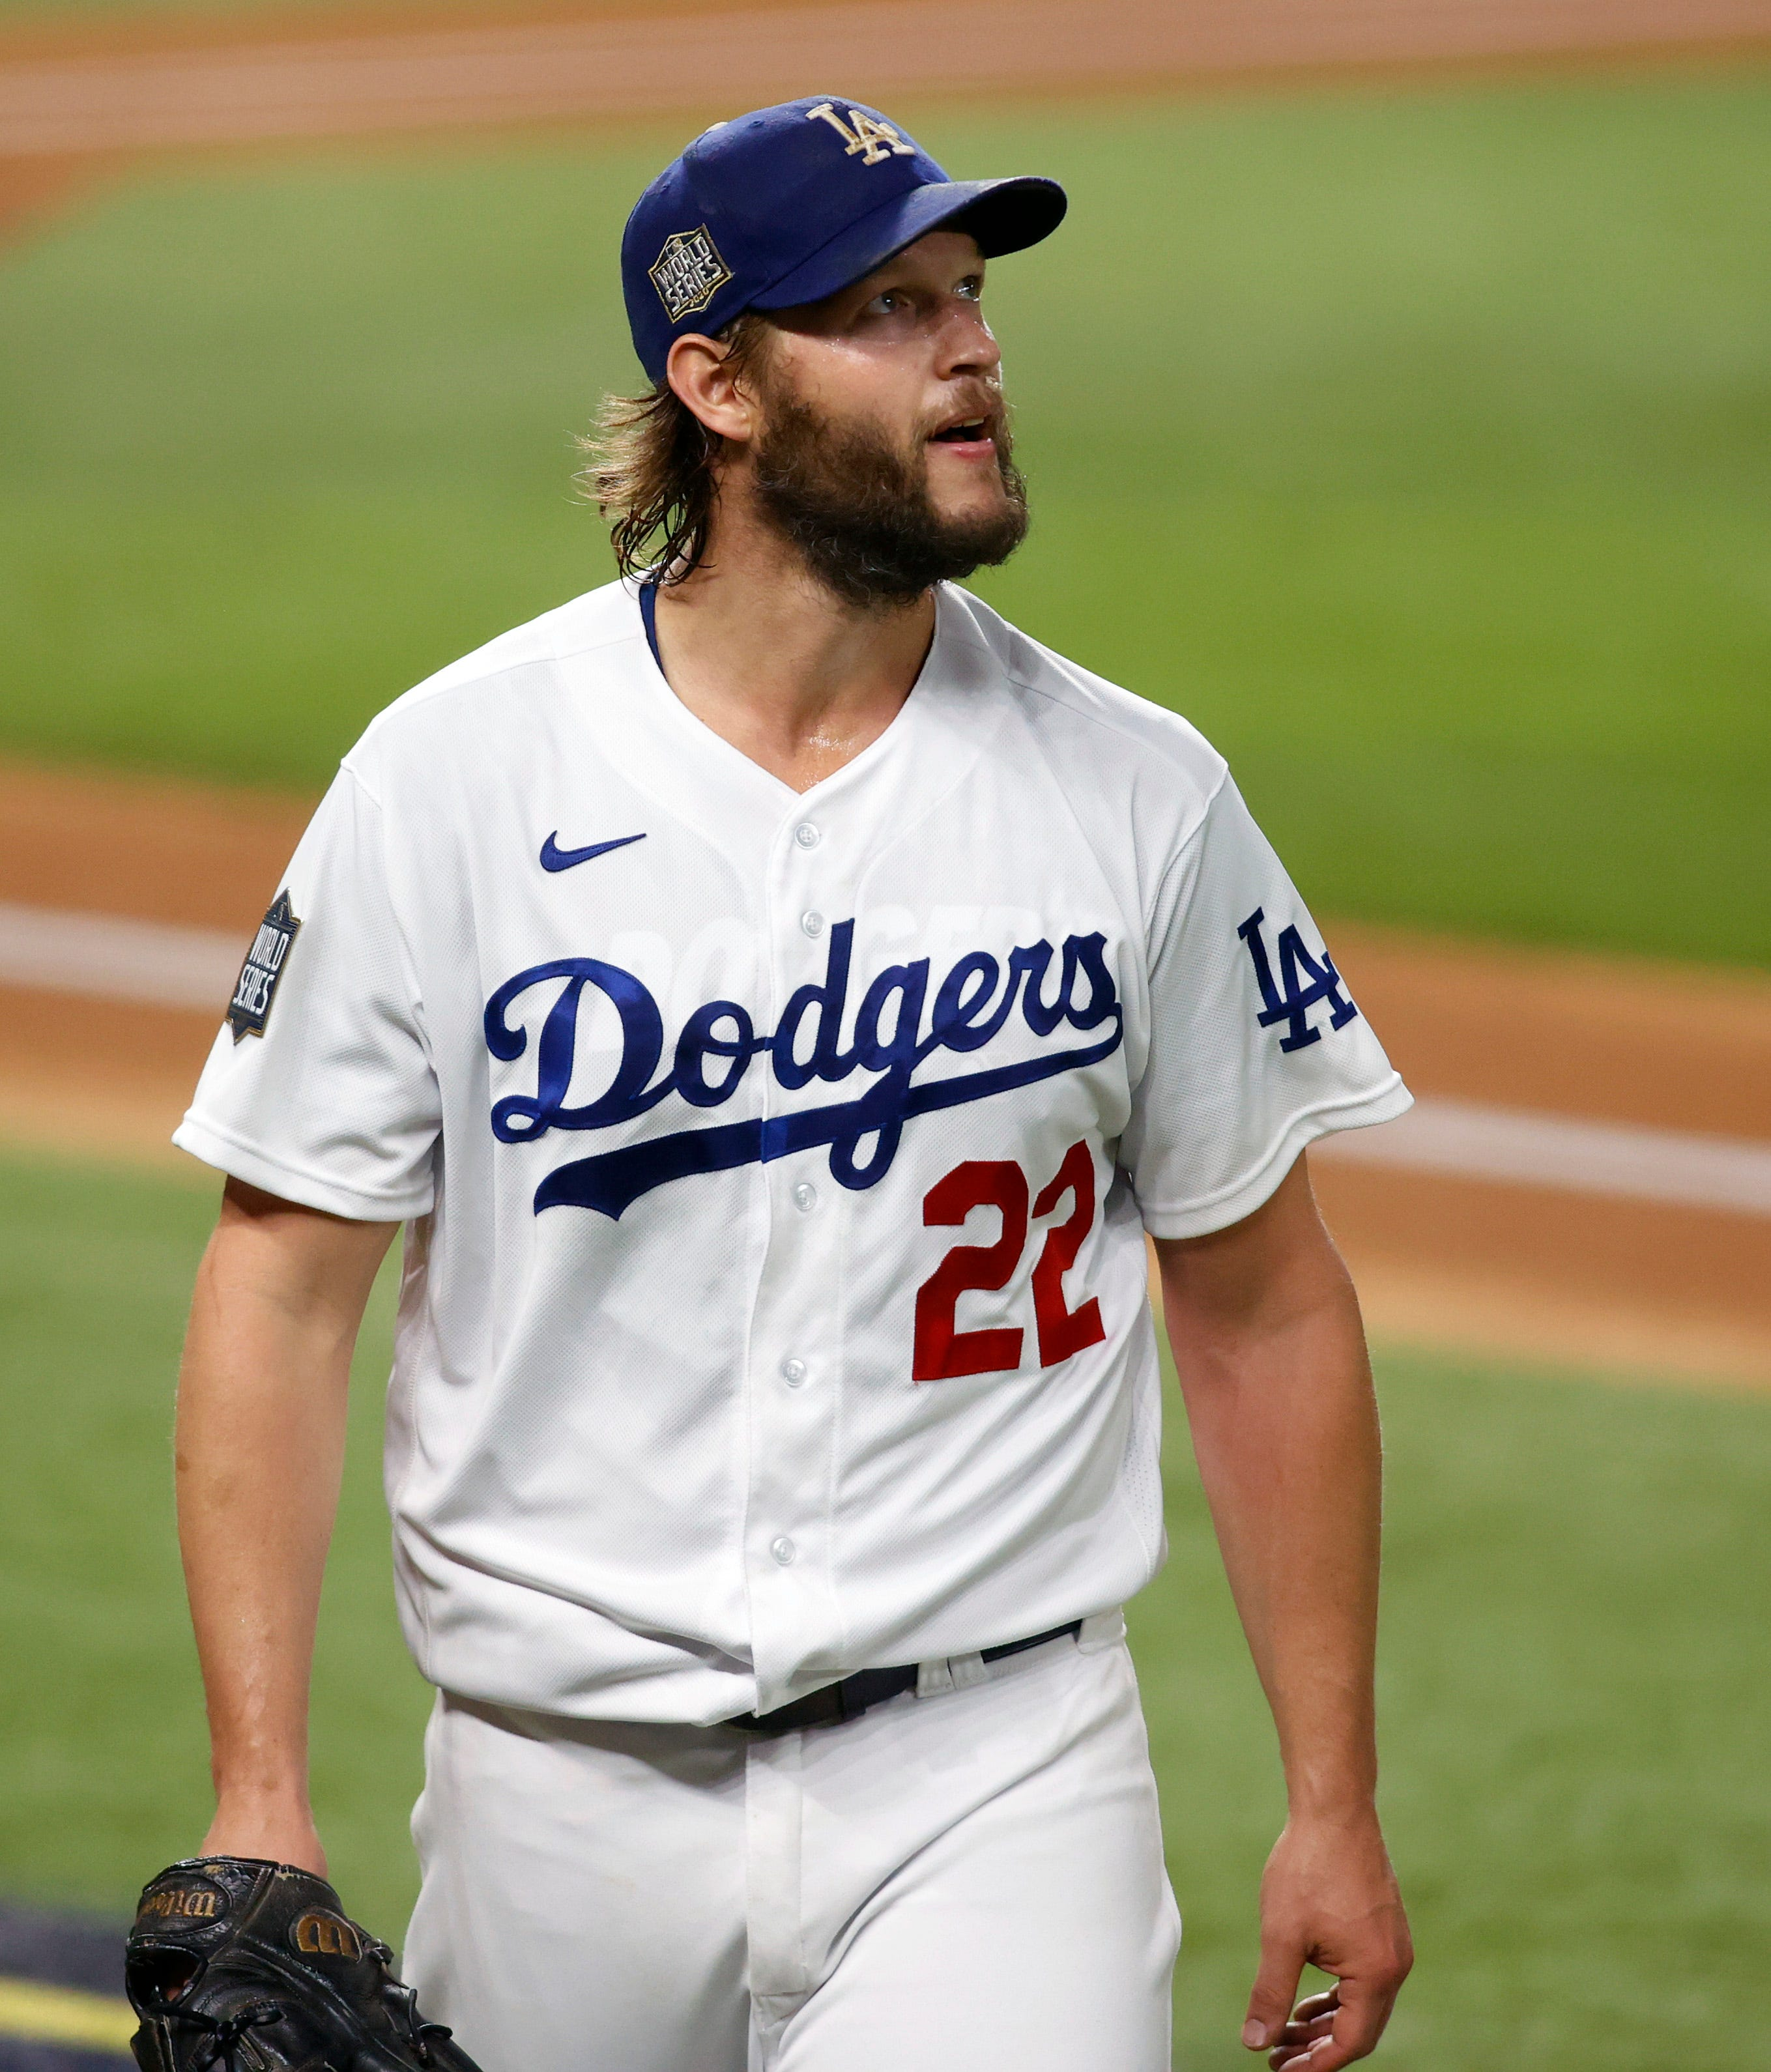 The Dodgers aren't desperate (yet). That may bode well for Clayton Kershaw in World Series Game 5